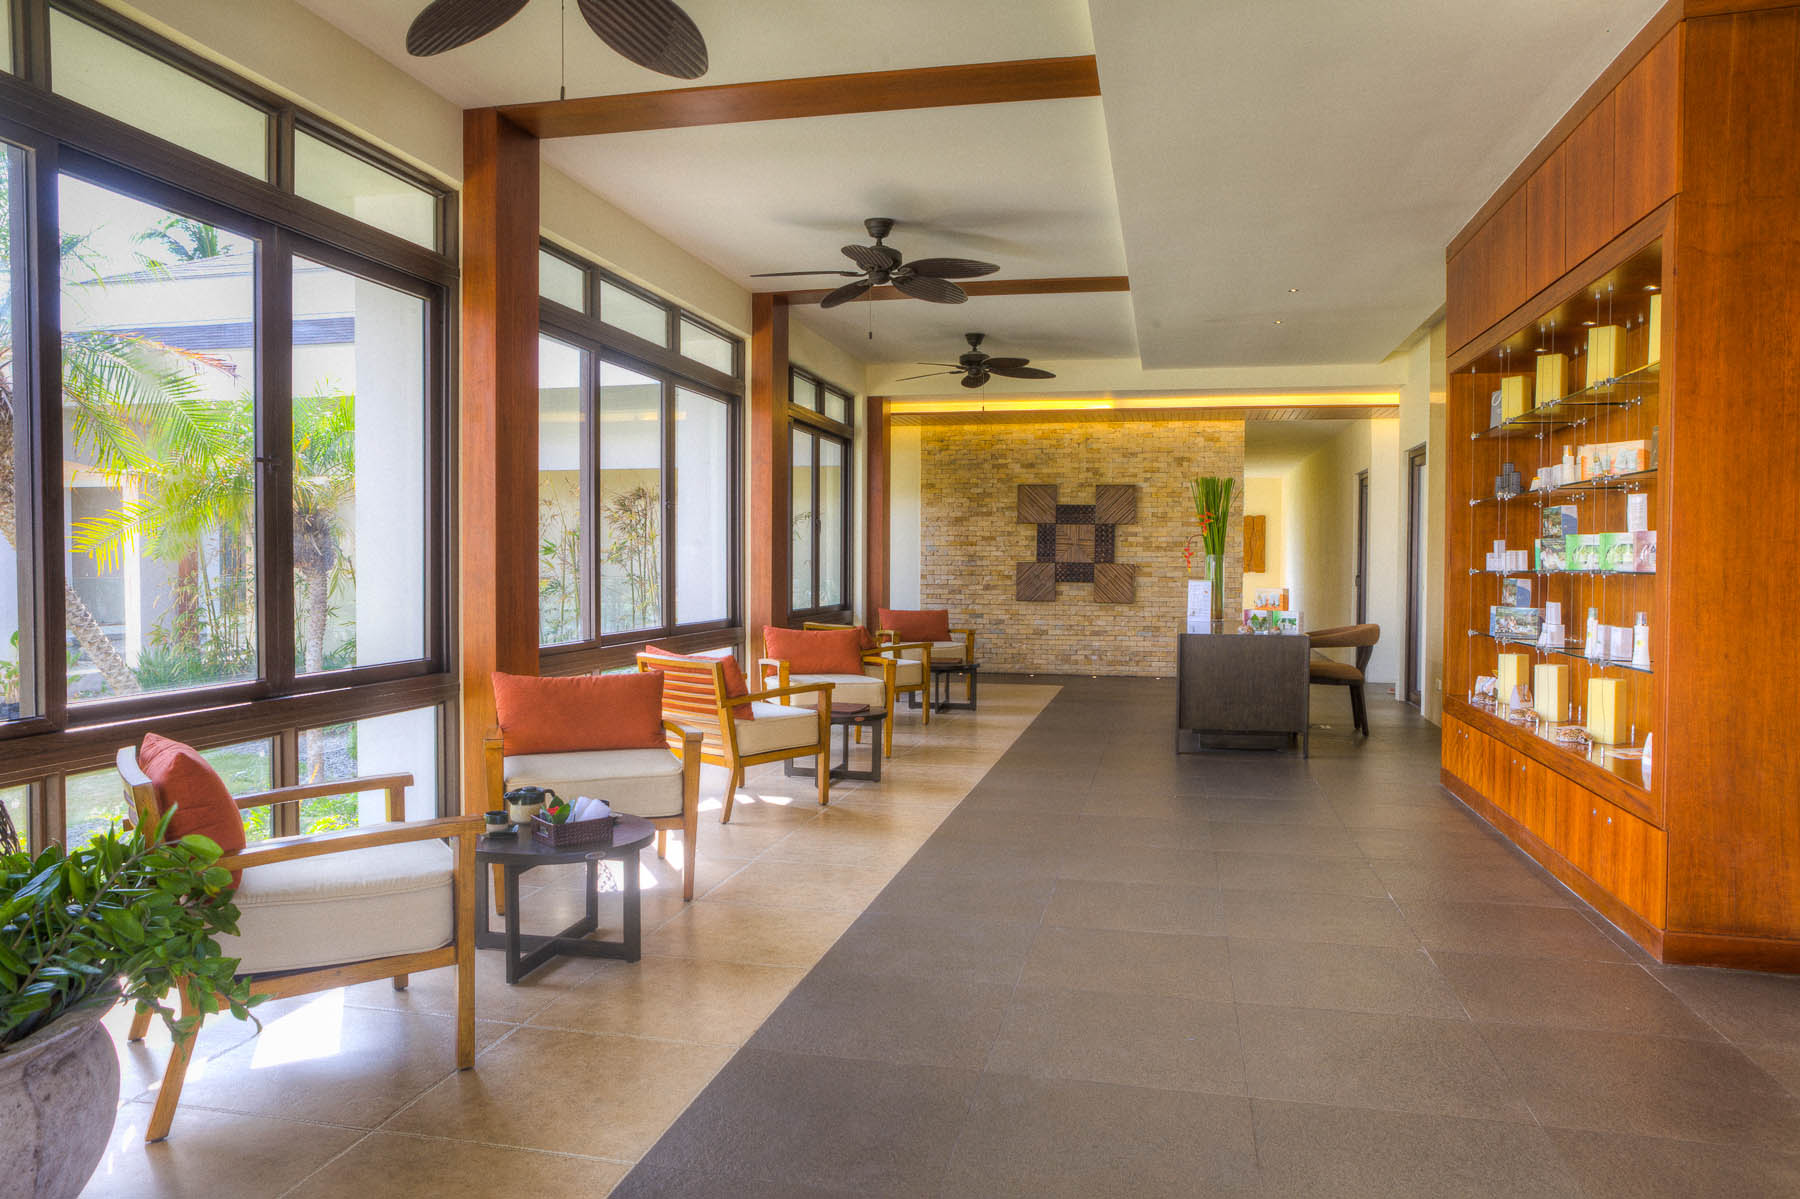 Daya Spa's Reception Area // Photo by Kandaya Resort